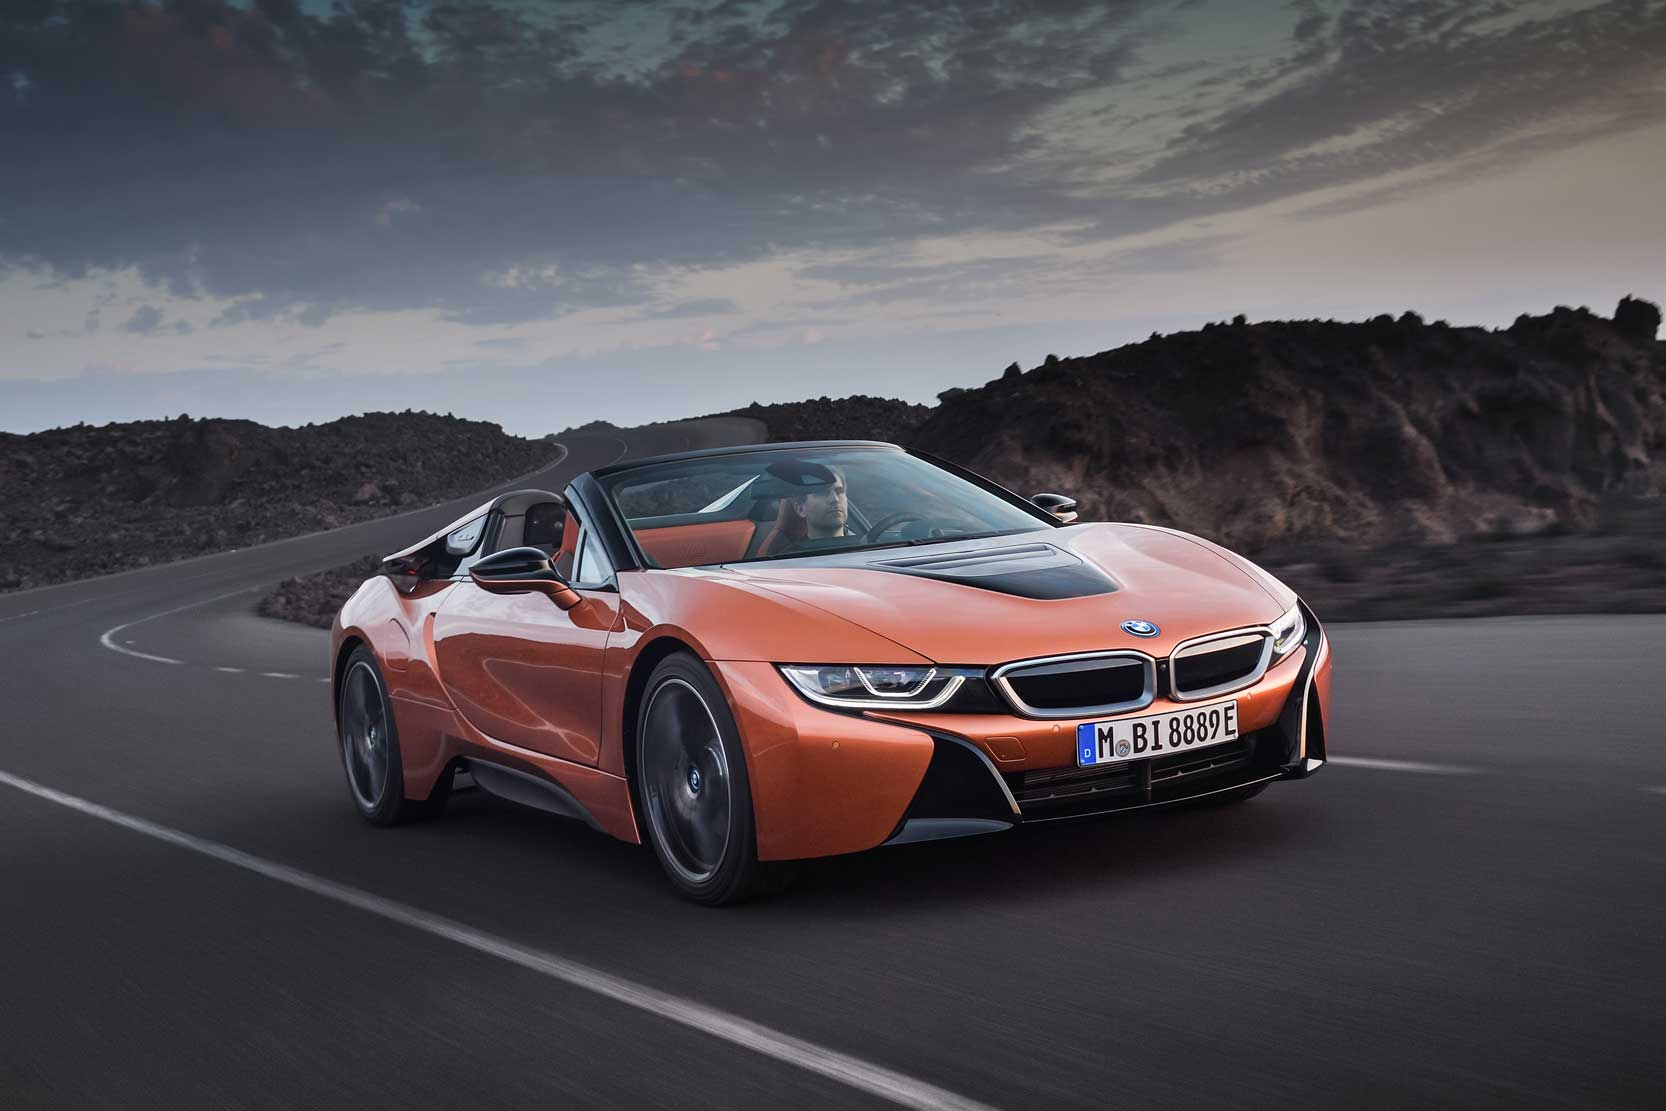 Exterieur_Bmw-i8-Roadster_5